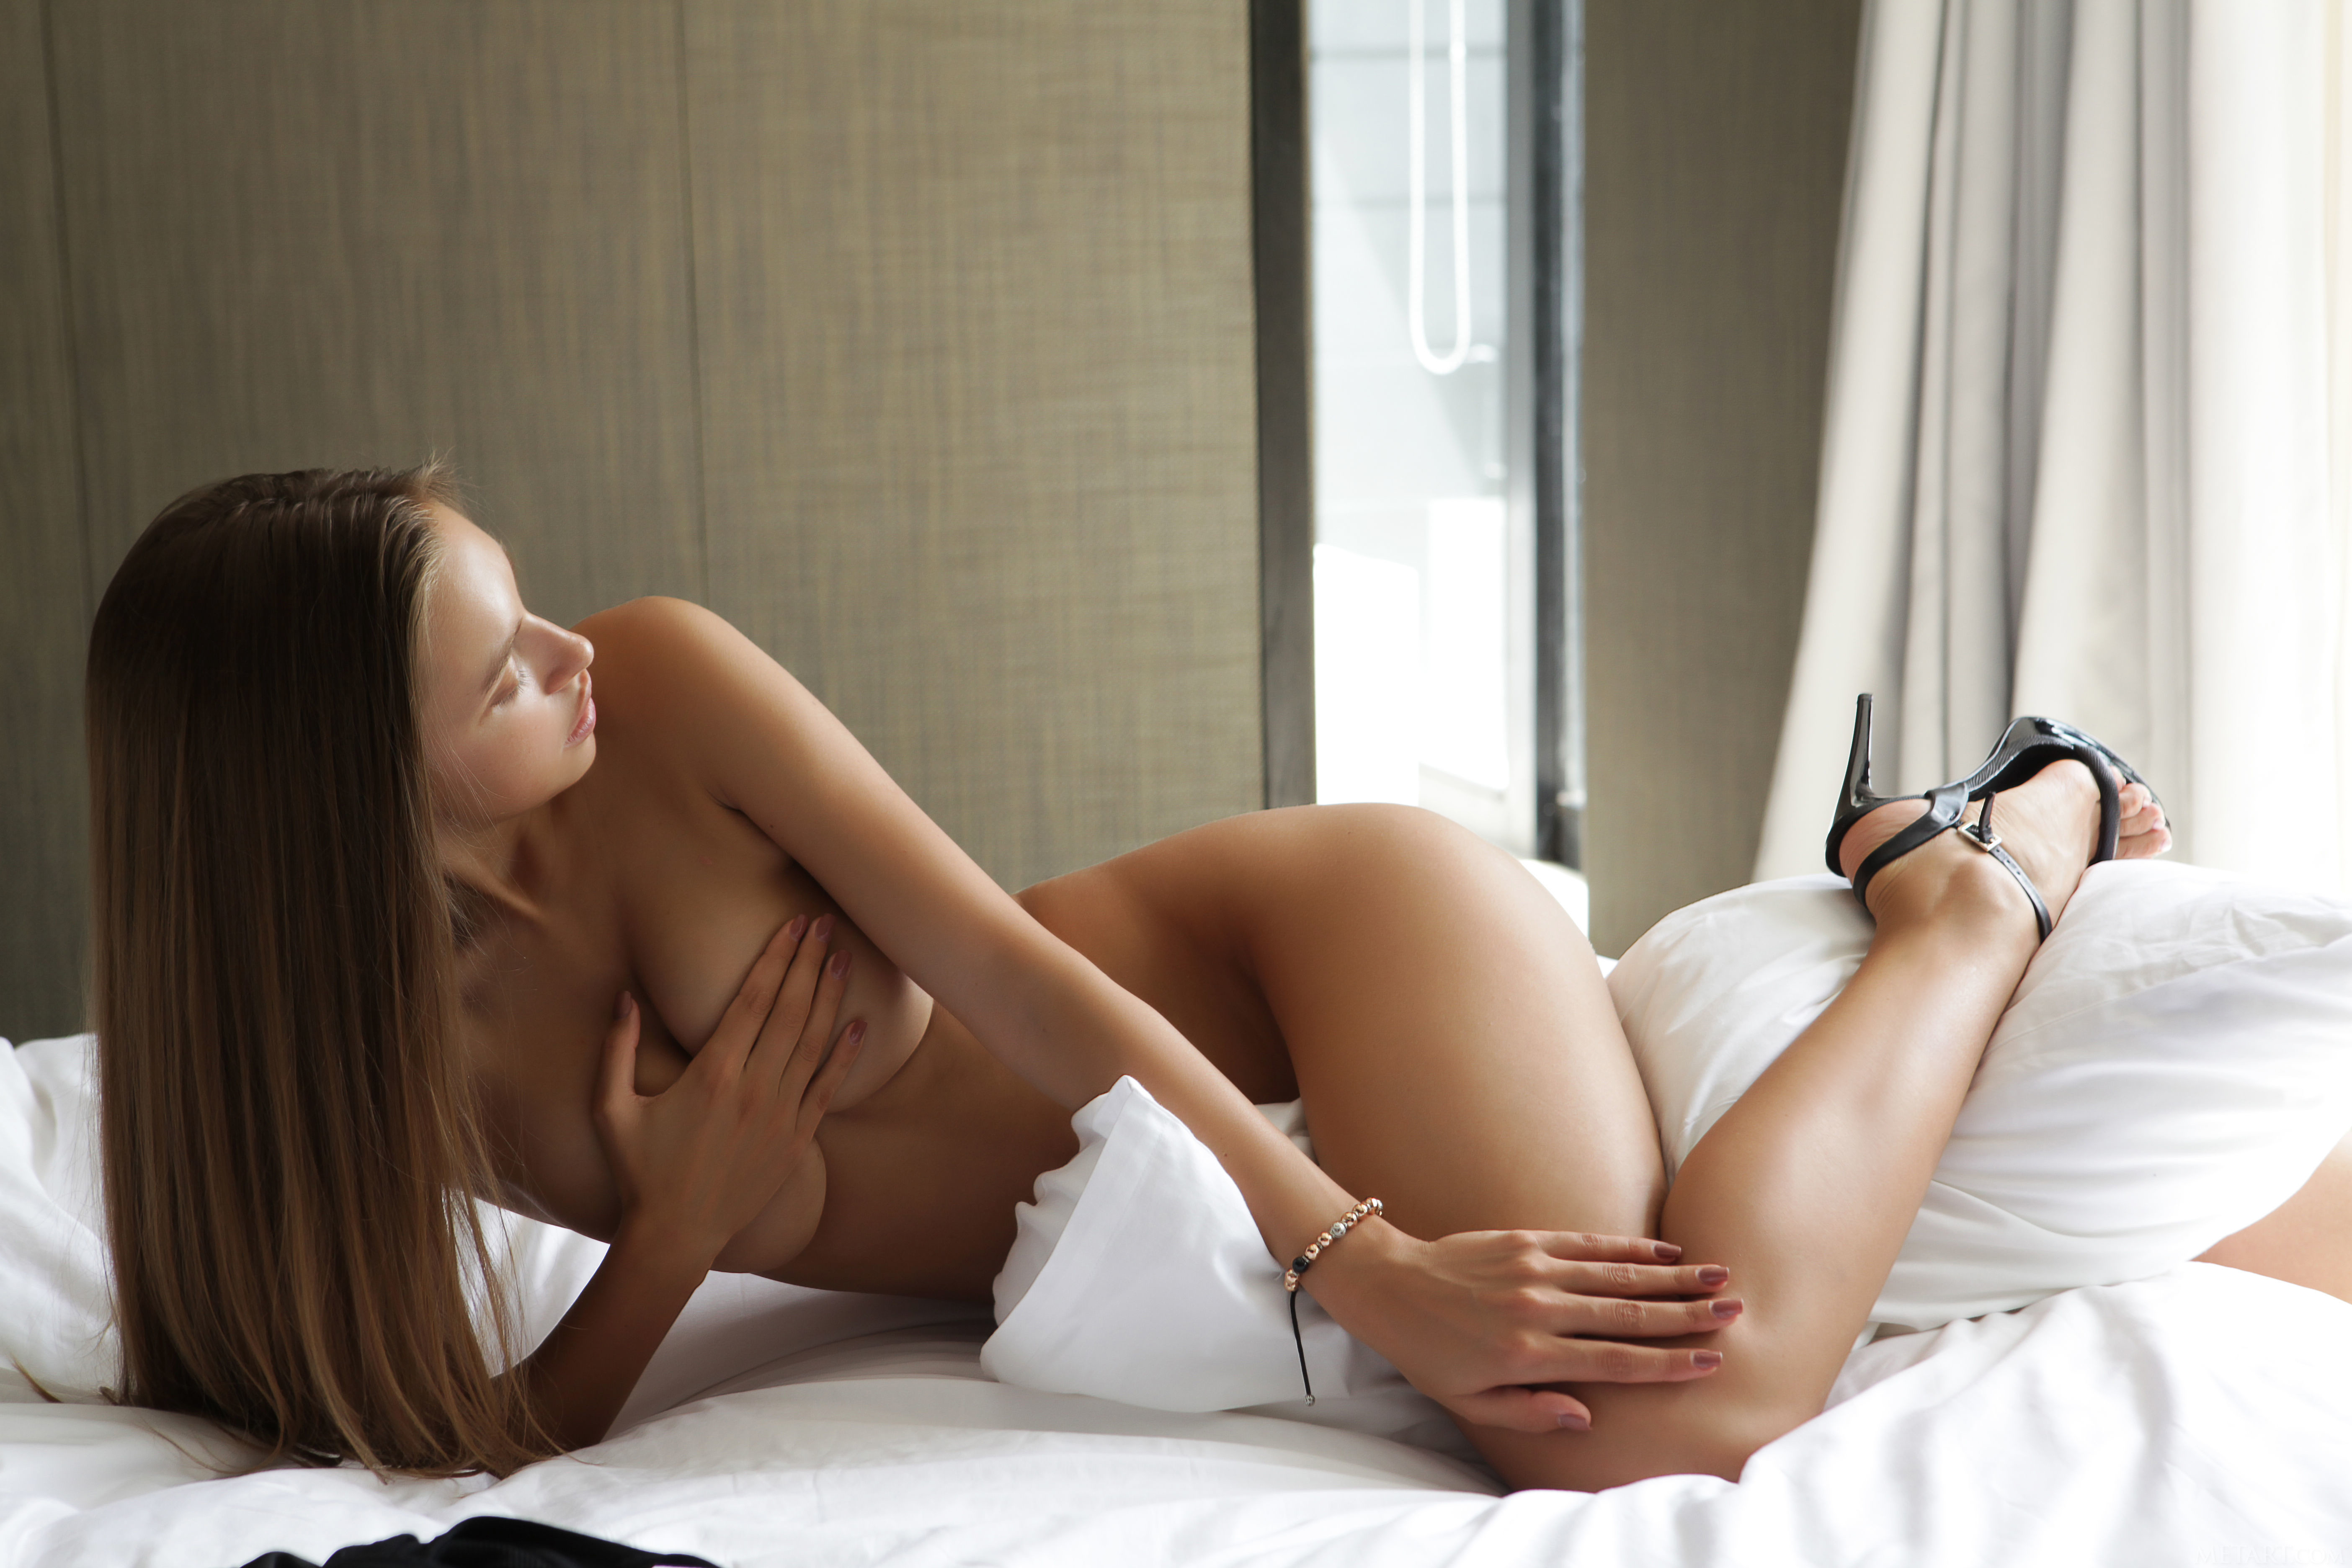 naked-girls-in-bedroom-nude-mix-vol4-97